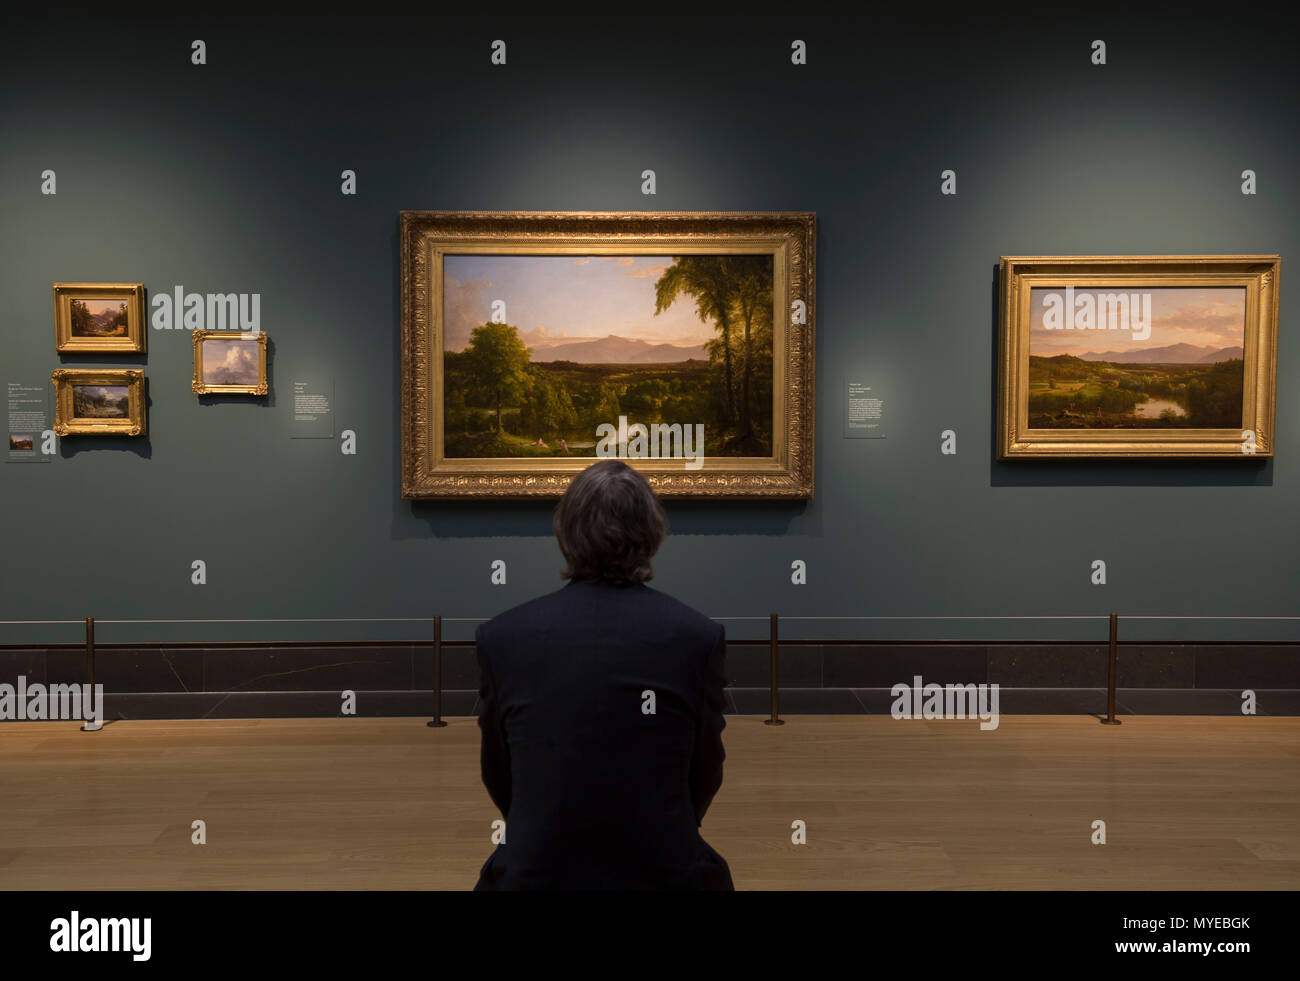 National Gallery, London, UK. 7 June, 2018. Thomas Cole: Eden to Empire. Tthe American wilderness is seen through the eyes of British-born Thomas Cole (1801–1848). Thomas Cole's work depicts nature at its most powerful and vulnerable. His paintings glory in the unique terrain of the American Northeast – largely still unspoiled in his time. Image: View on the Catskill - Early Autumn, 1836-37. Lent by The Metropolitan Museum of Art. Credit: Malcolm Park/Alamy Live News. Stock Photo